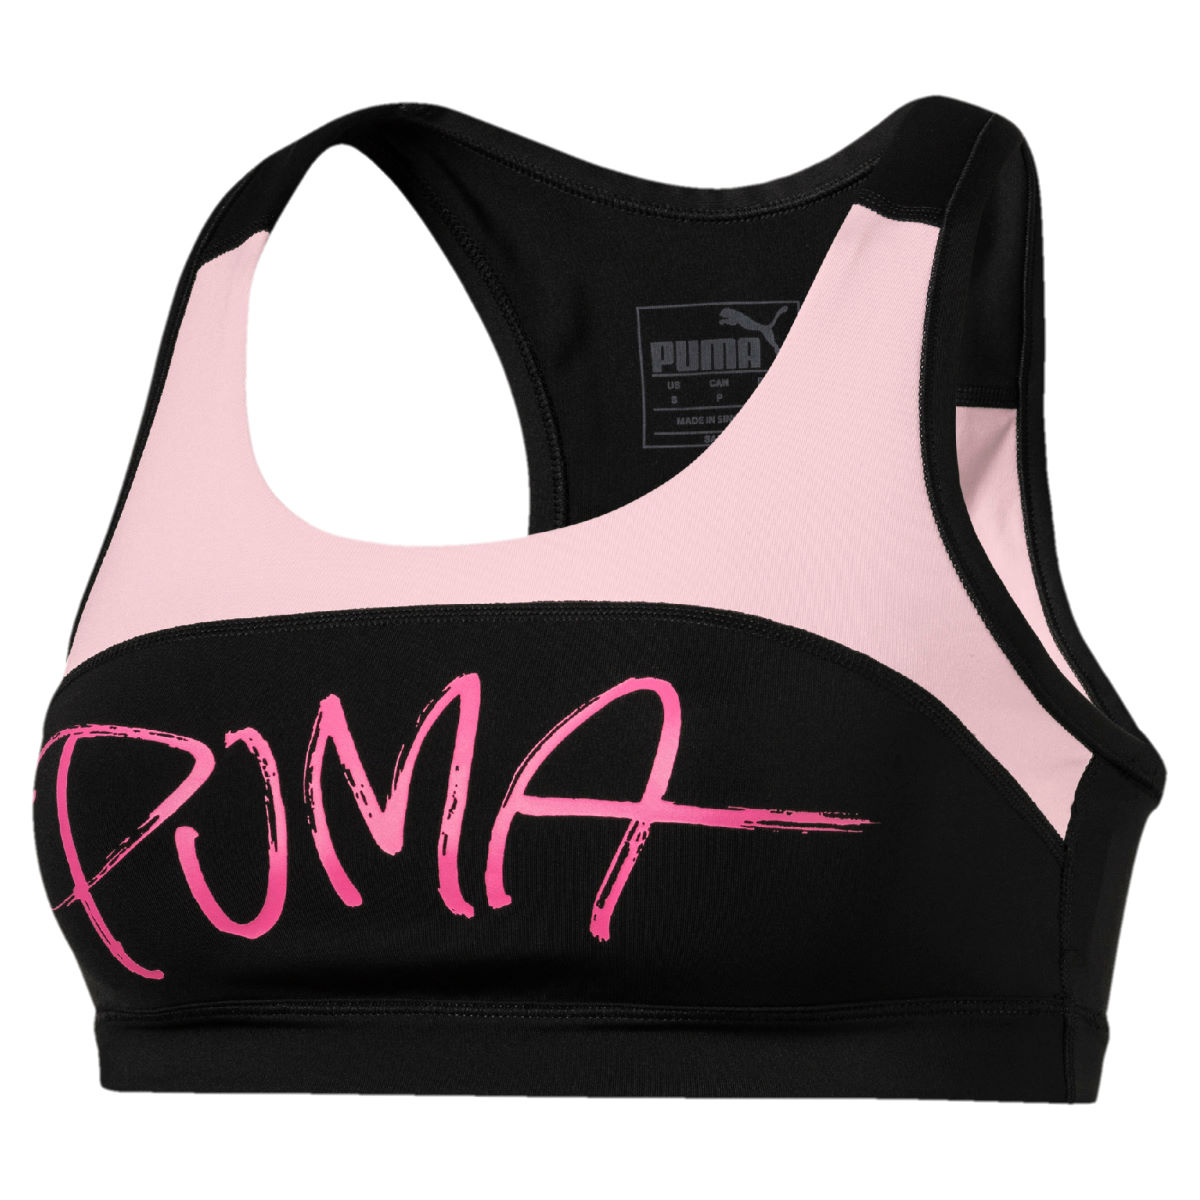 Puma 4 Keeps Sweet Bra   Sports Bras